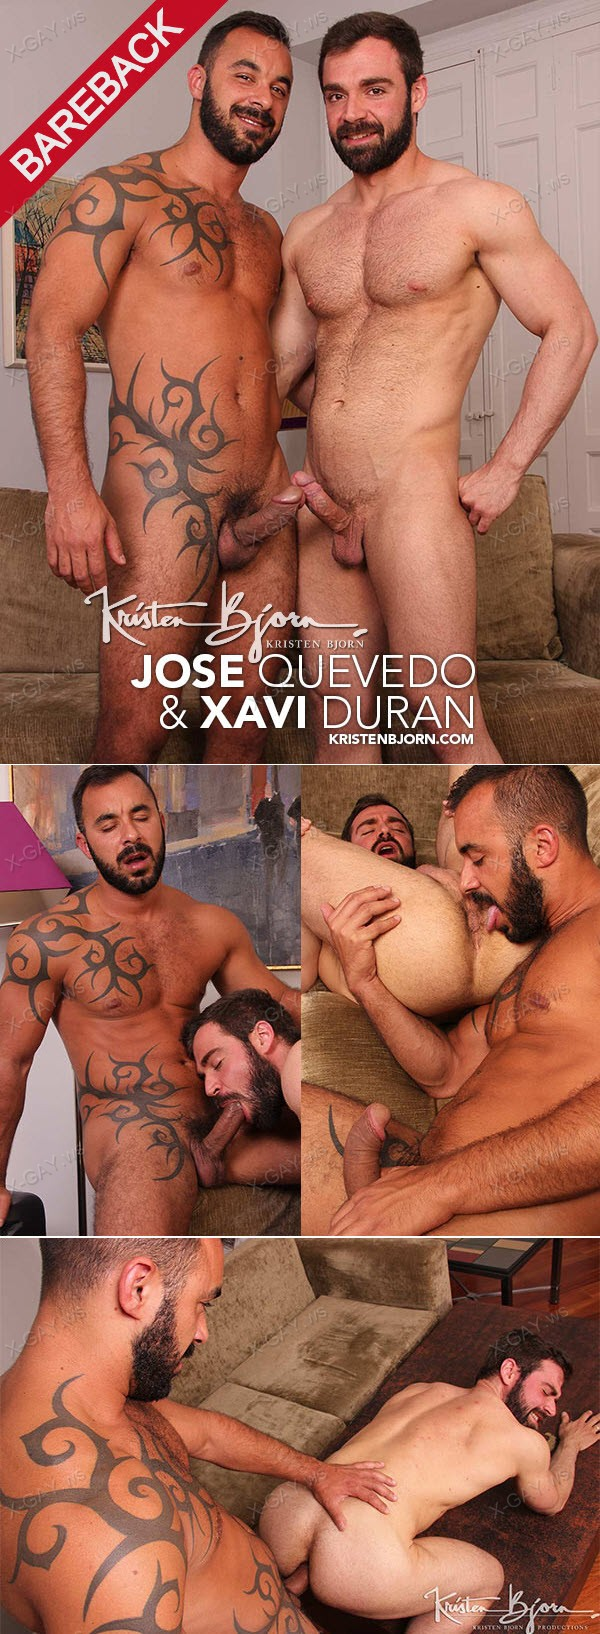 KristenBjorn: Sex Men, That Men Have (Jose Quevedo, Xavi Duran) (Bareback)